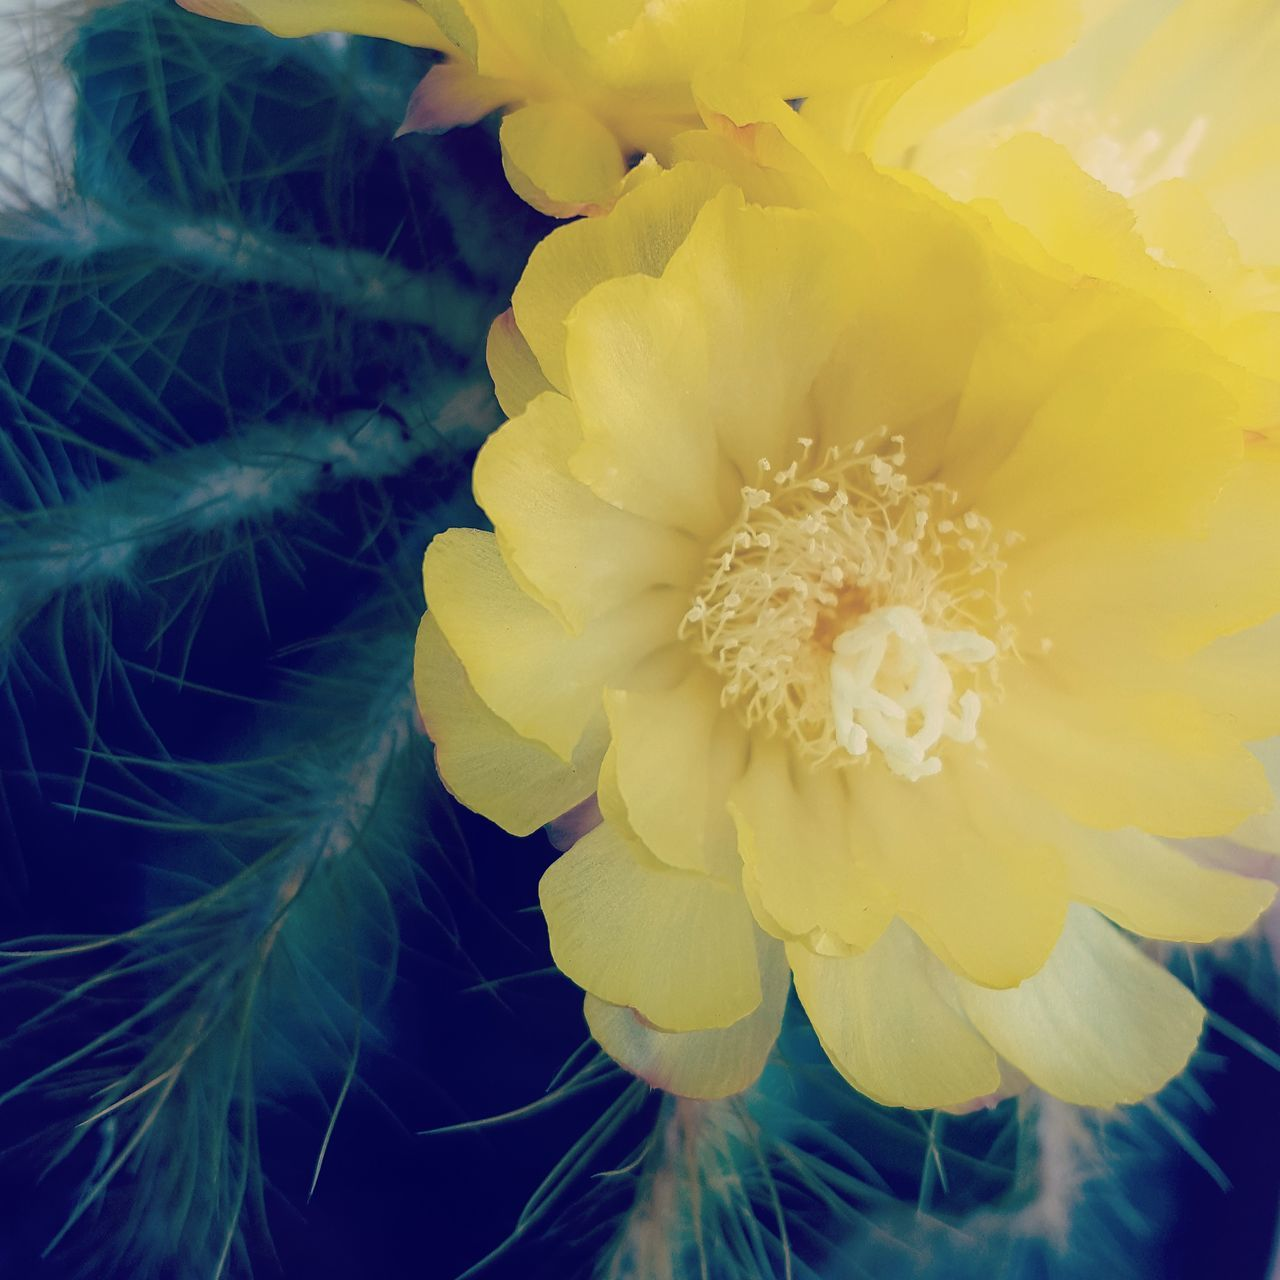 Cactus Flower Cactus Flower Garden Garden Flower Nature S6 Samsungphotography Samsung Galaxy S6 Green Yellow Yellow Flower Prickle Cactus Thorns